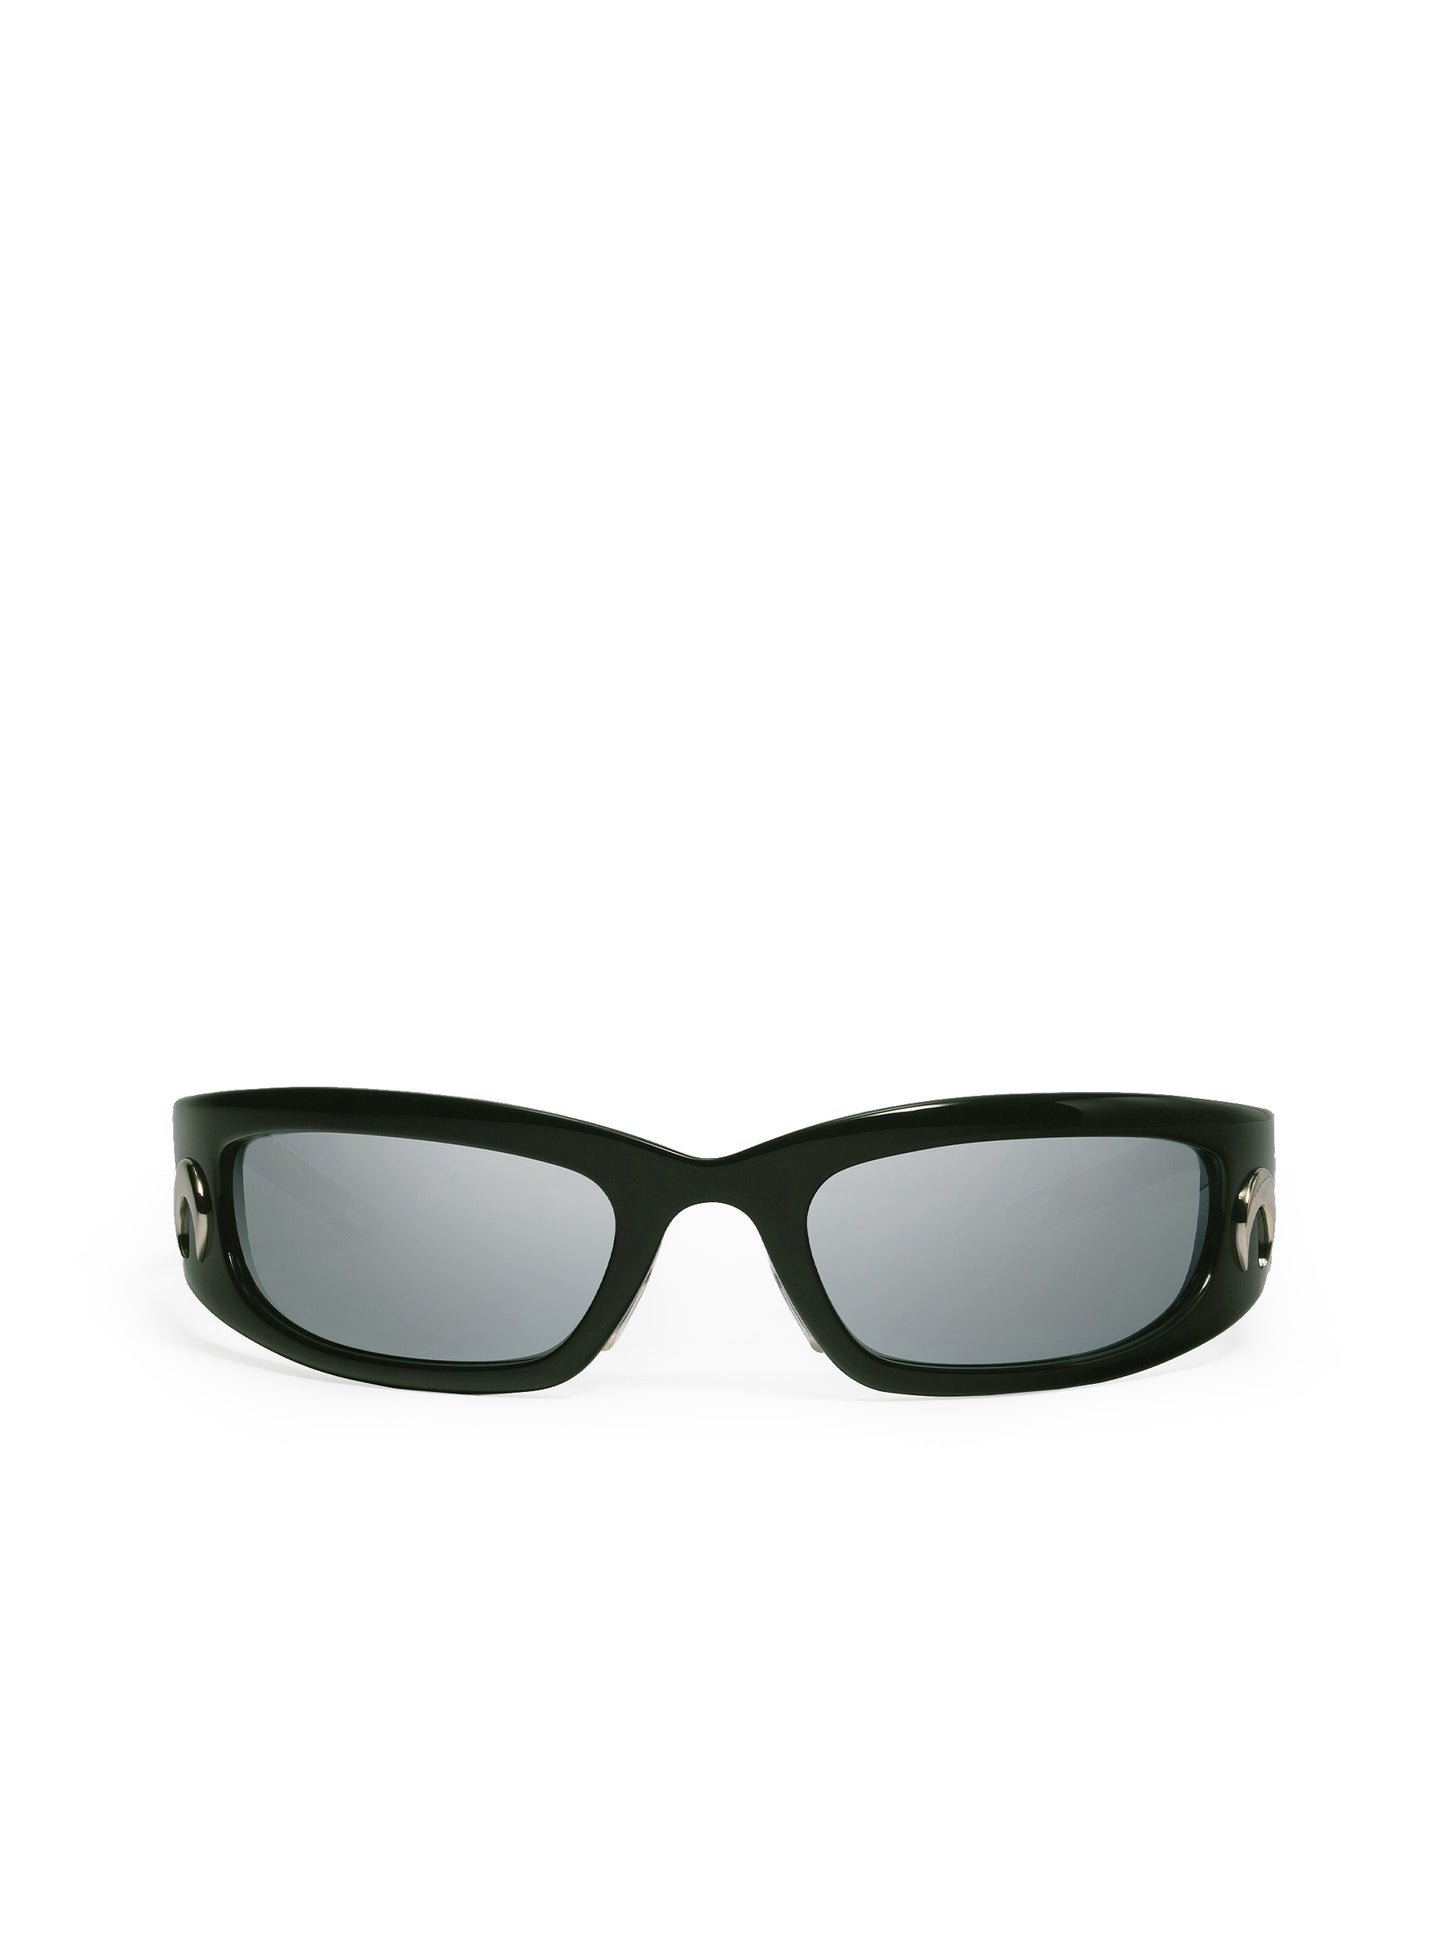 GM Curved Tinted Glasses Black